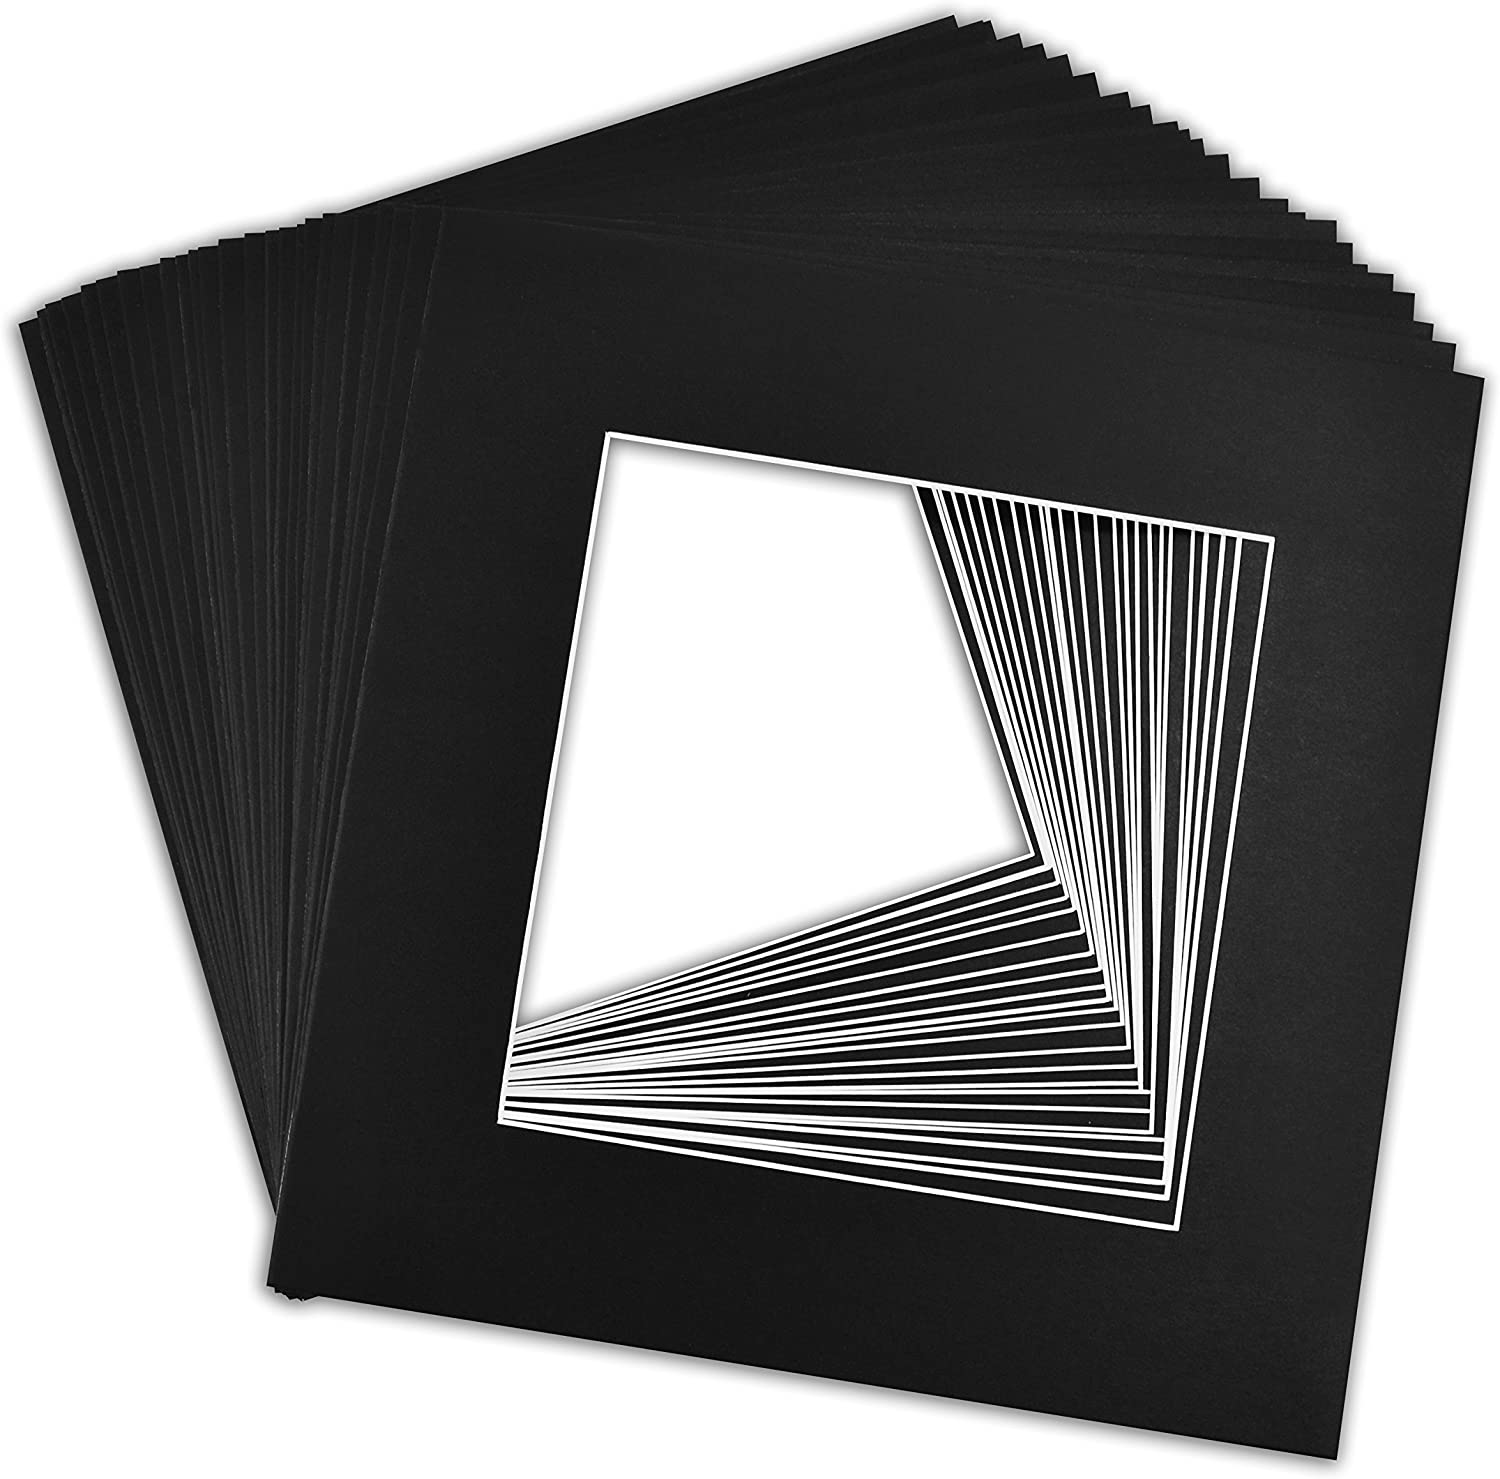 12x12 Black Picture Mats Mattes with White Core Bevel Cut for 8x8 Photo Golden State Art Pack of 25